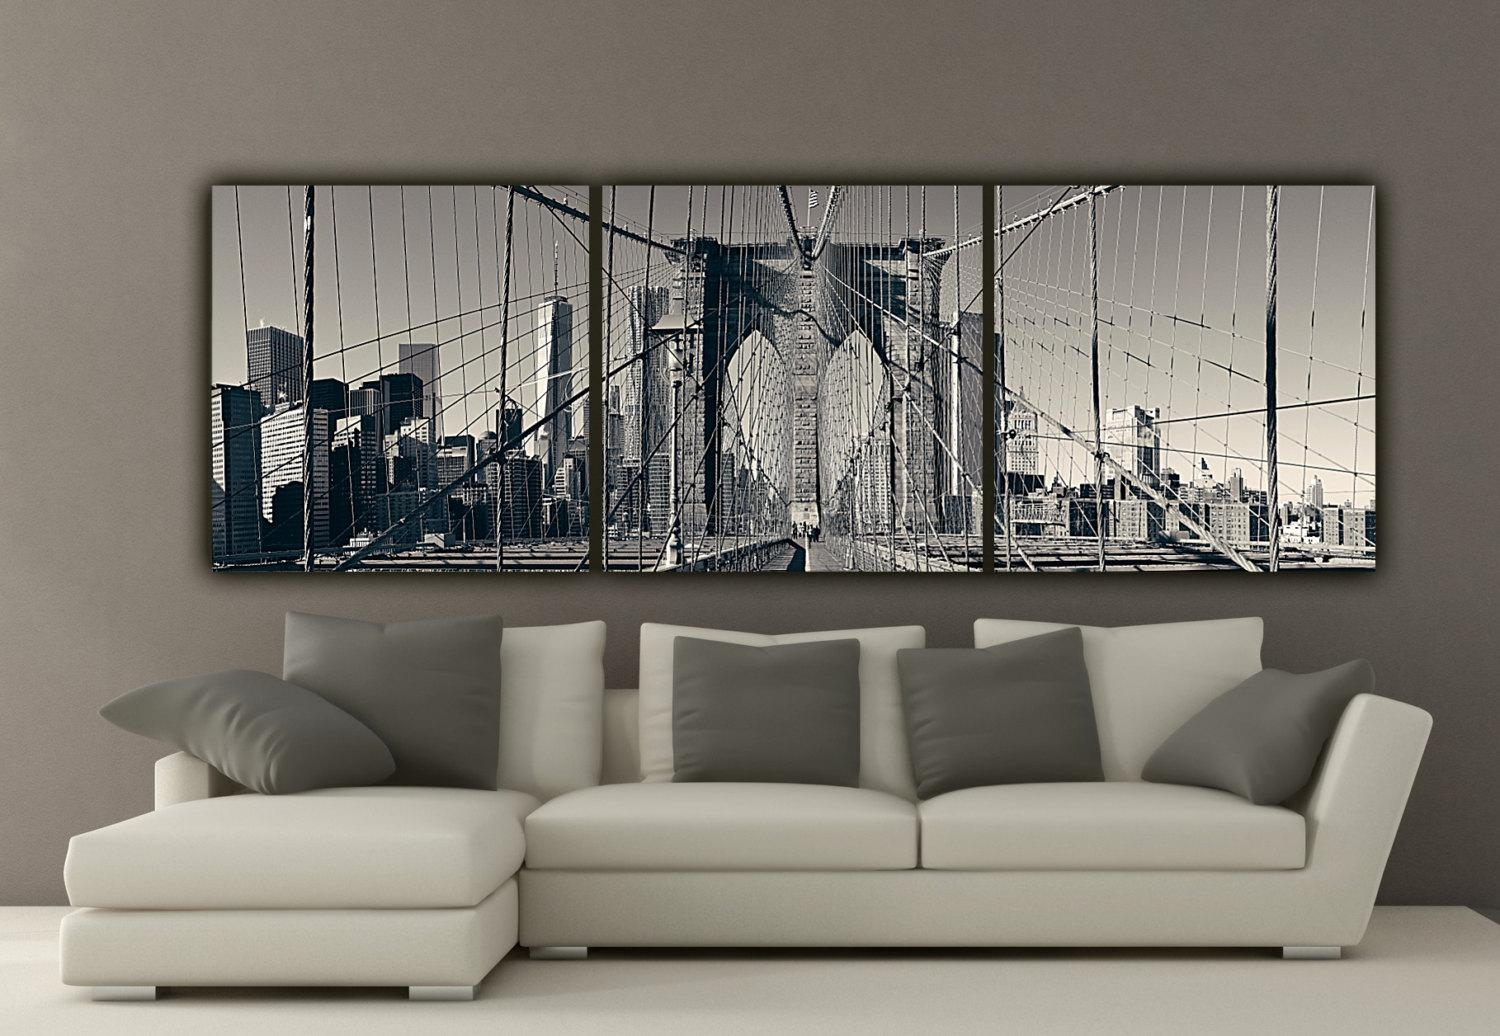 New York Brooklyn Bridge Canvas Wall Art Black And White New within Brooklyn Bridge Wall Decals